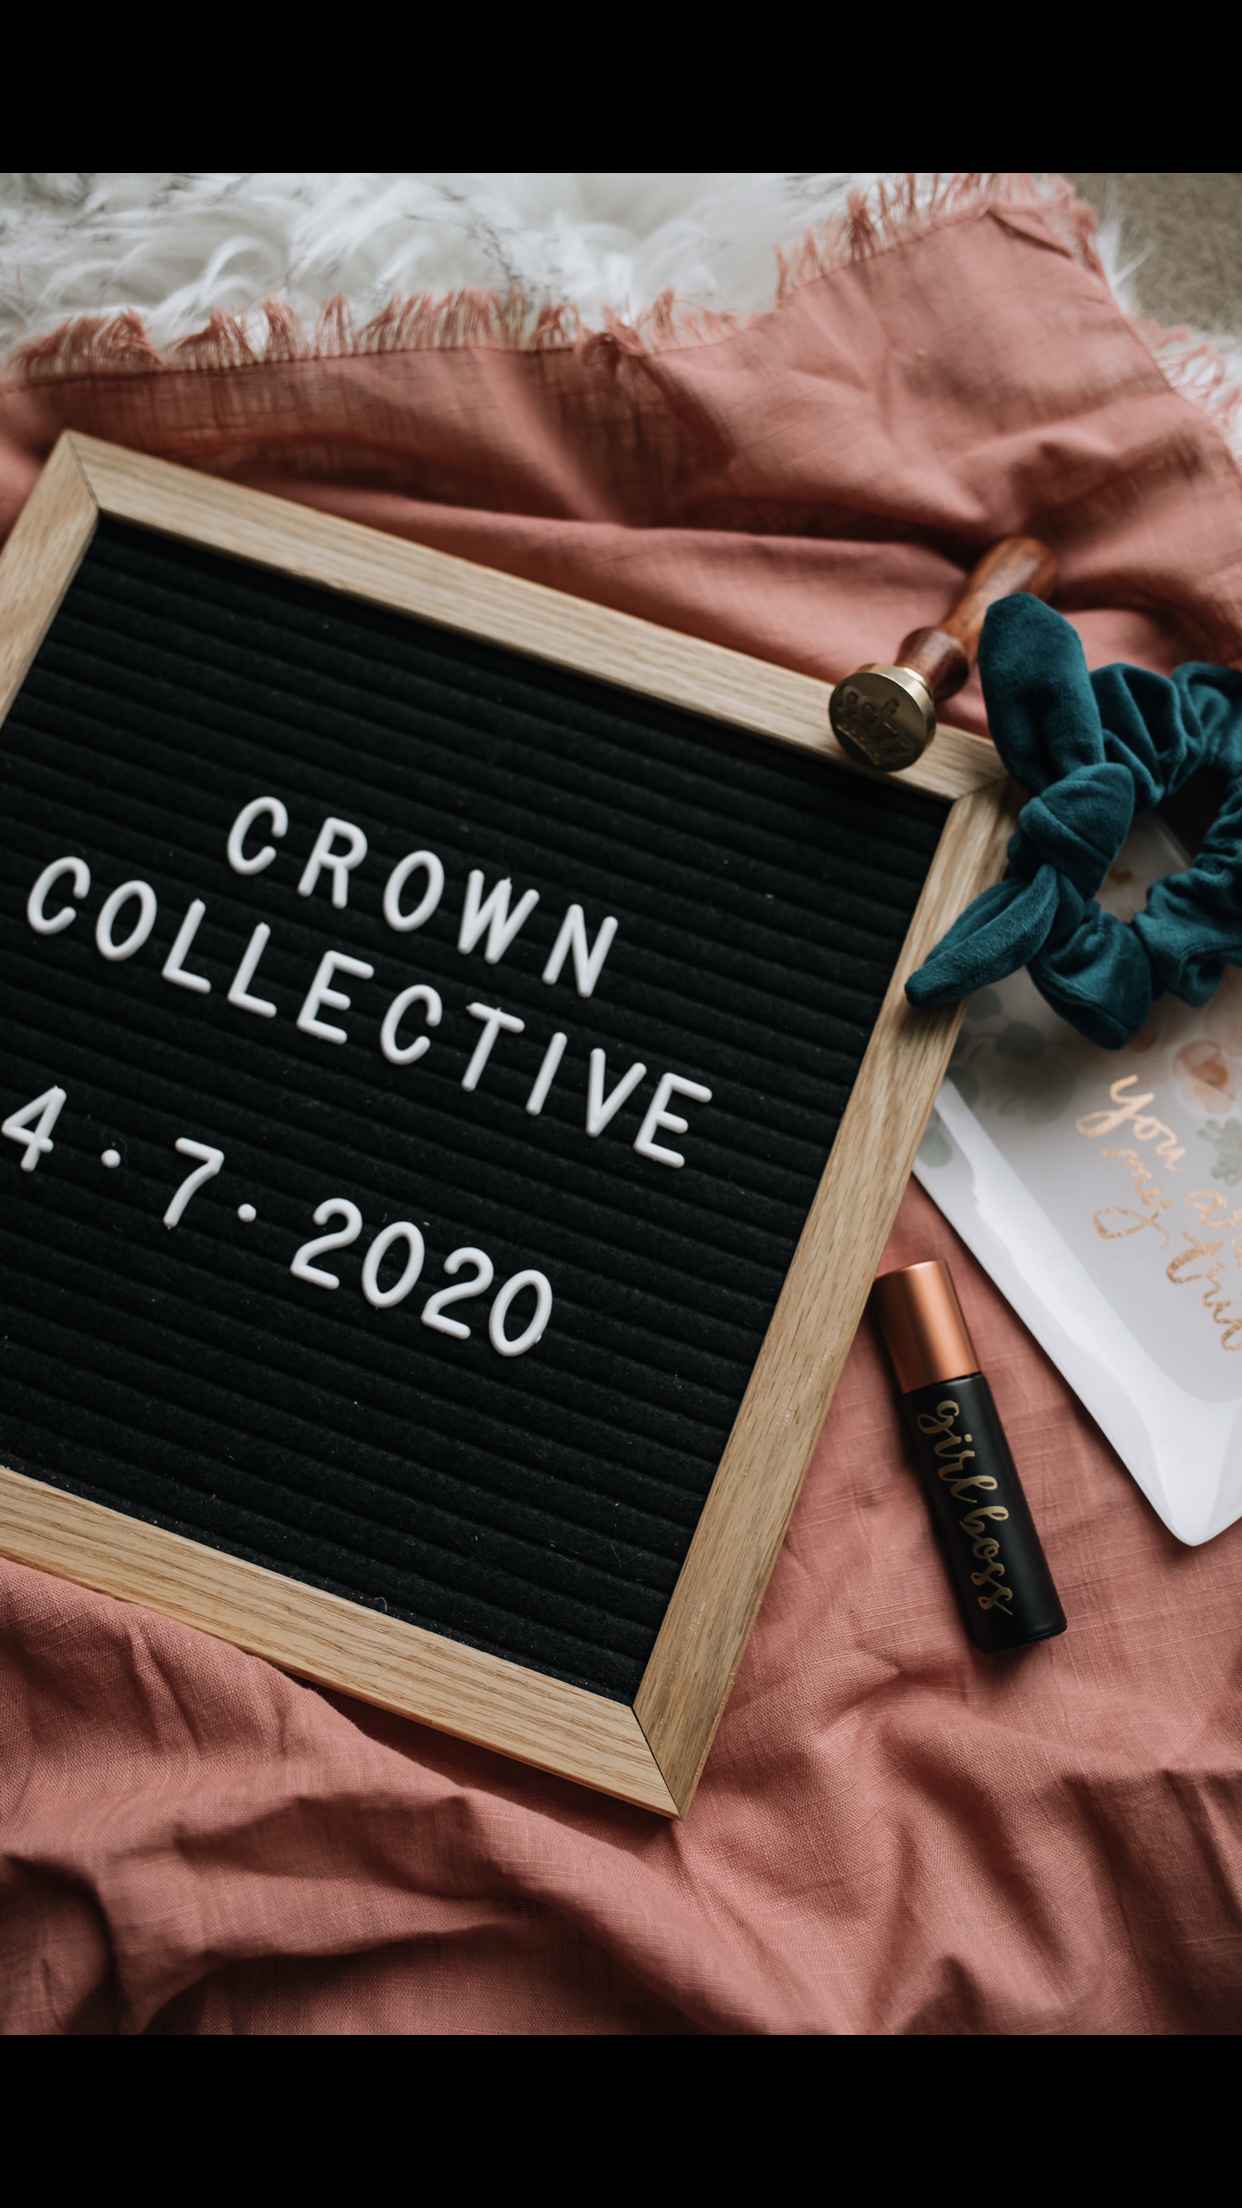 CROWN COLLECTIVE: SOCIAL MEDIA with Jenn Reed